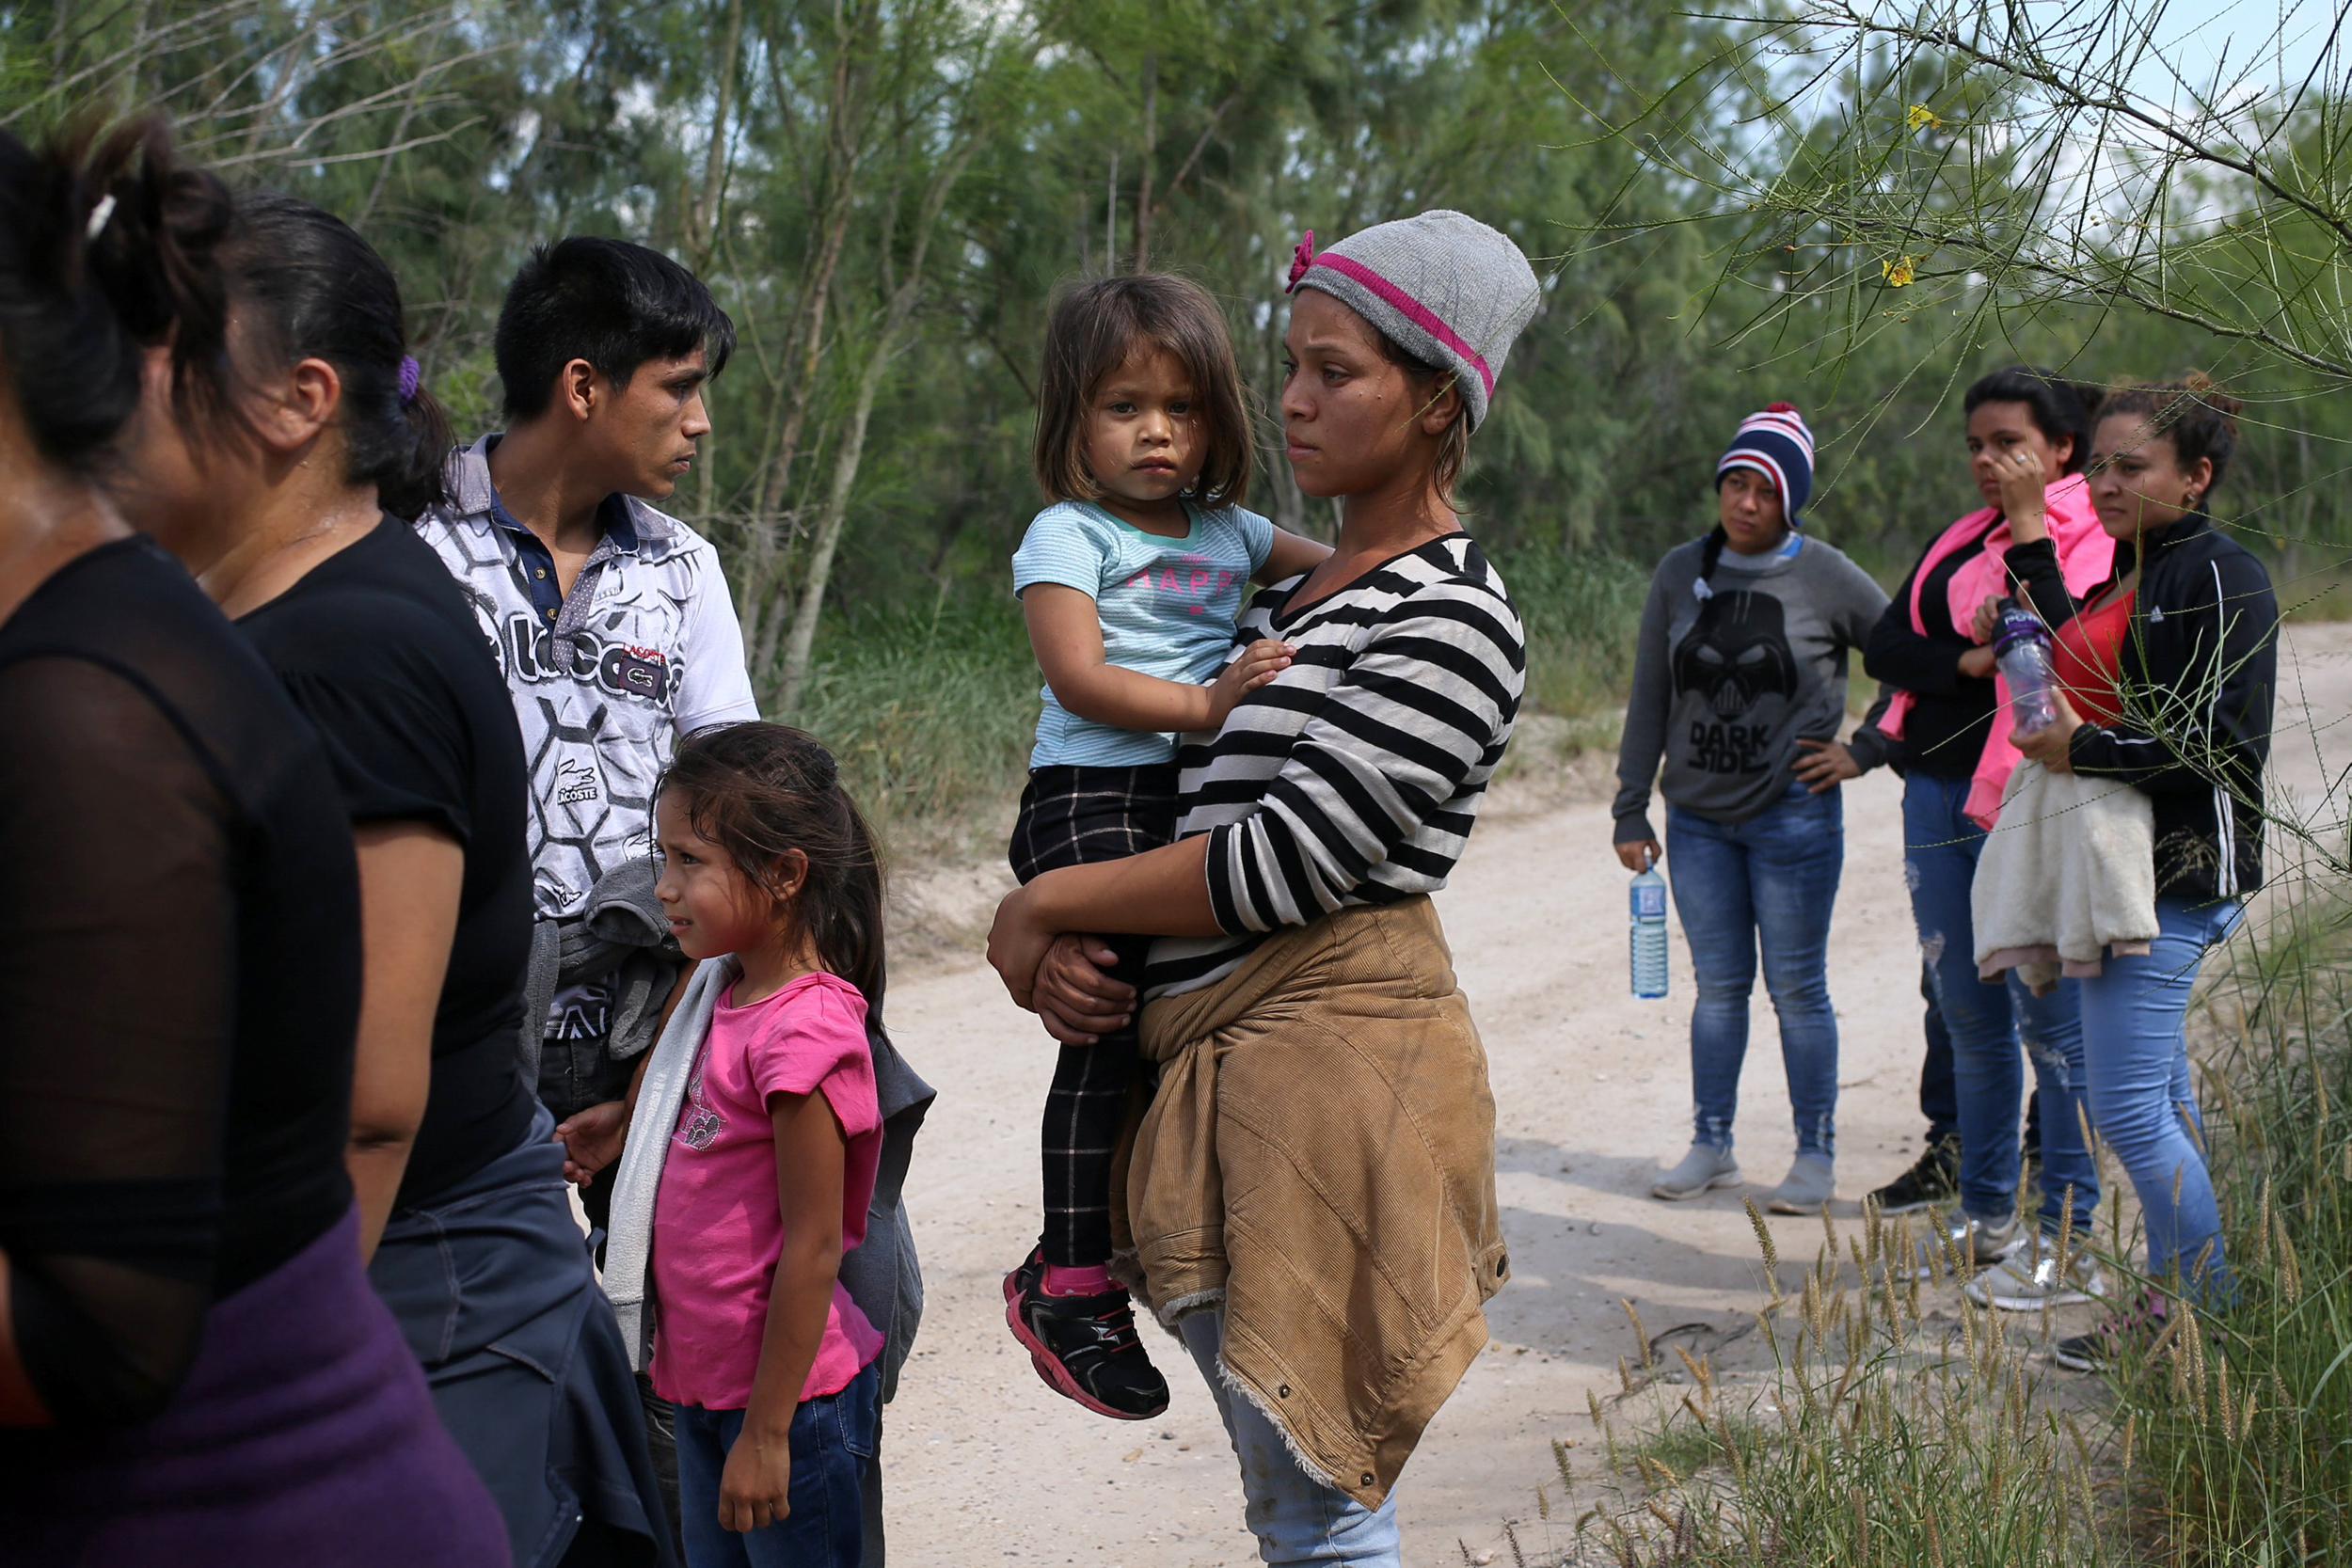 Former ICE director: Some migrant family separations are permanent